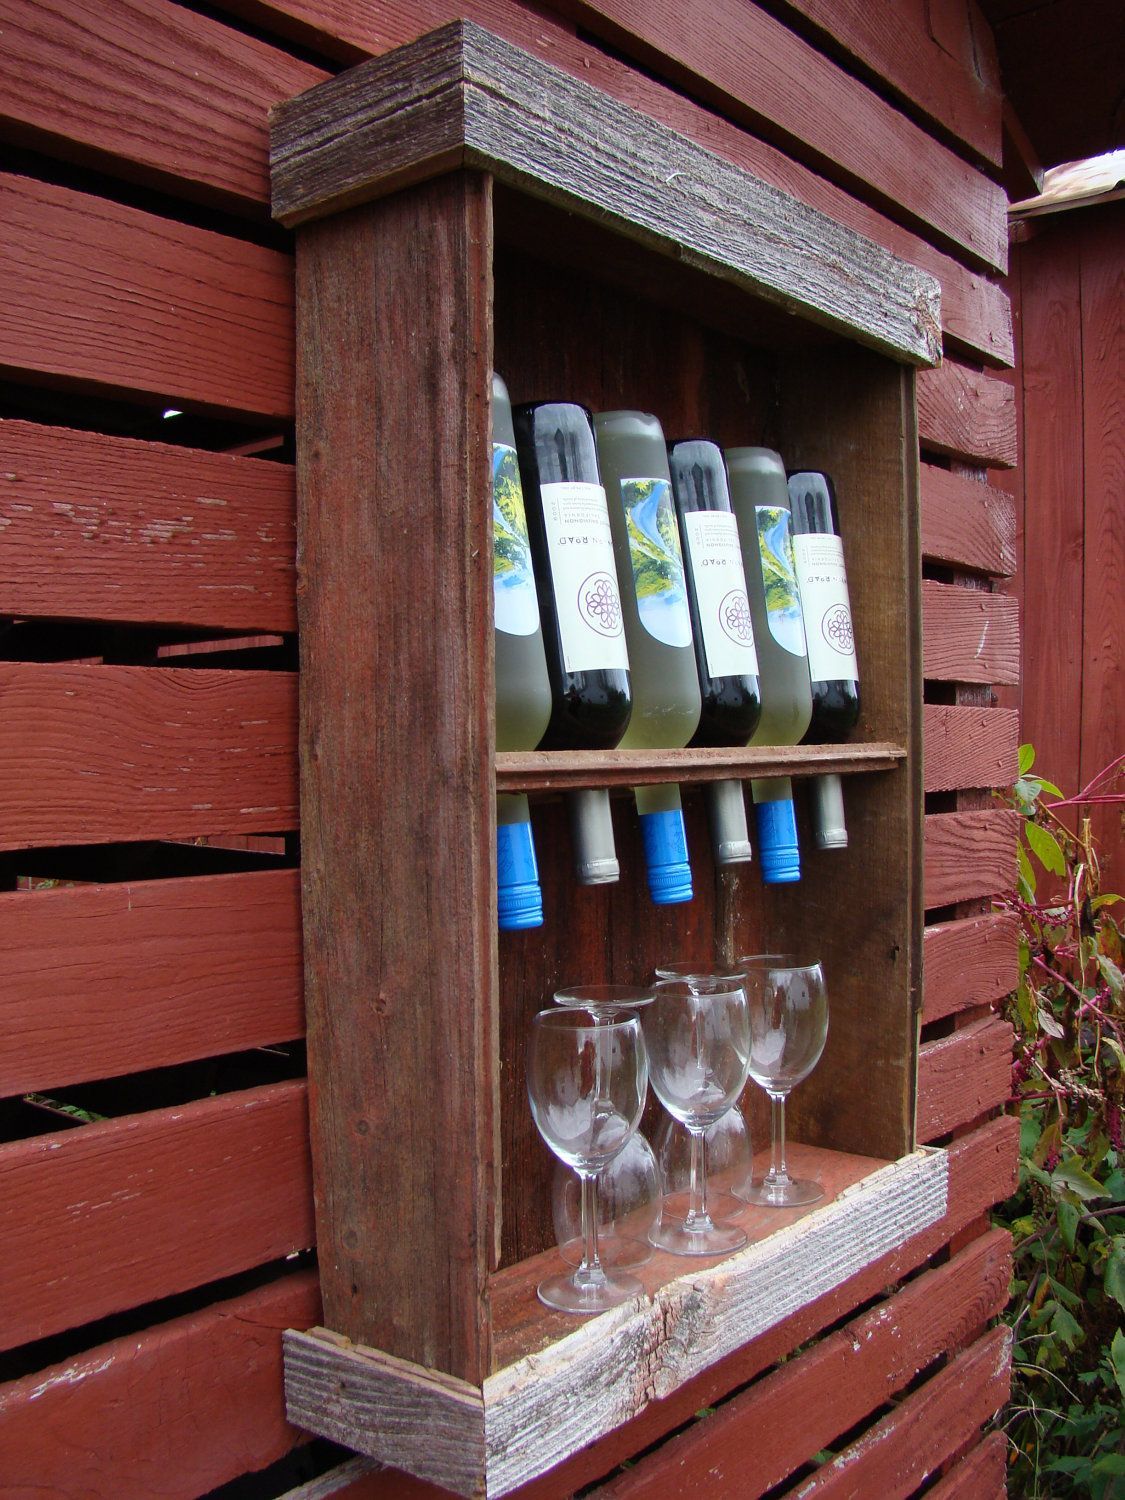 Good Idea For The Outdoor Living Area Barn Wood Wine Cabinet Via Etsy Reclaimed Wood Wine Rack Barn Wood Projects Barn Wood